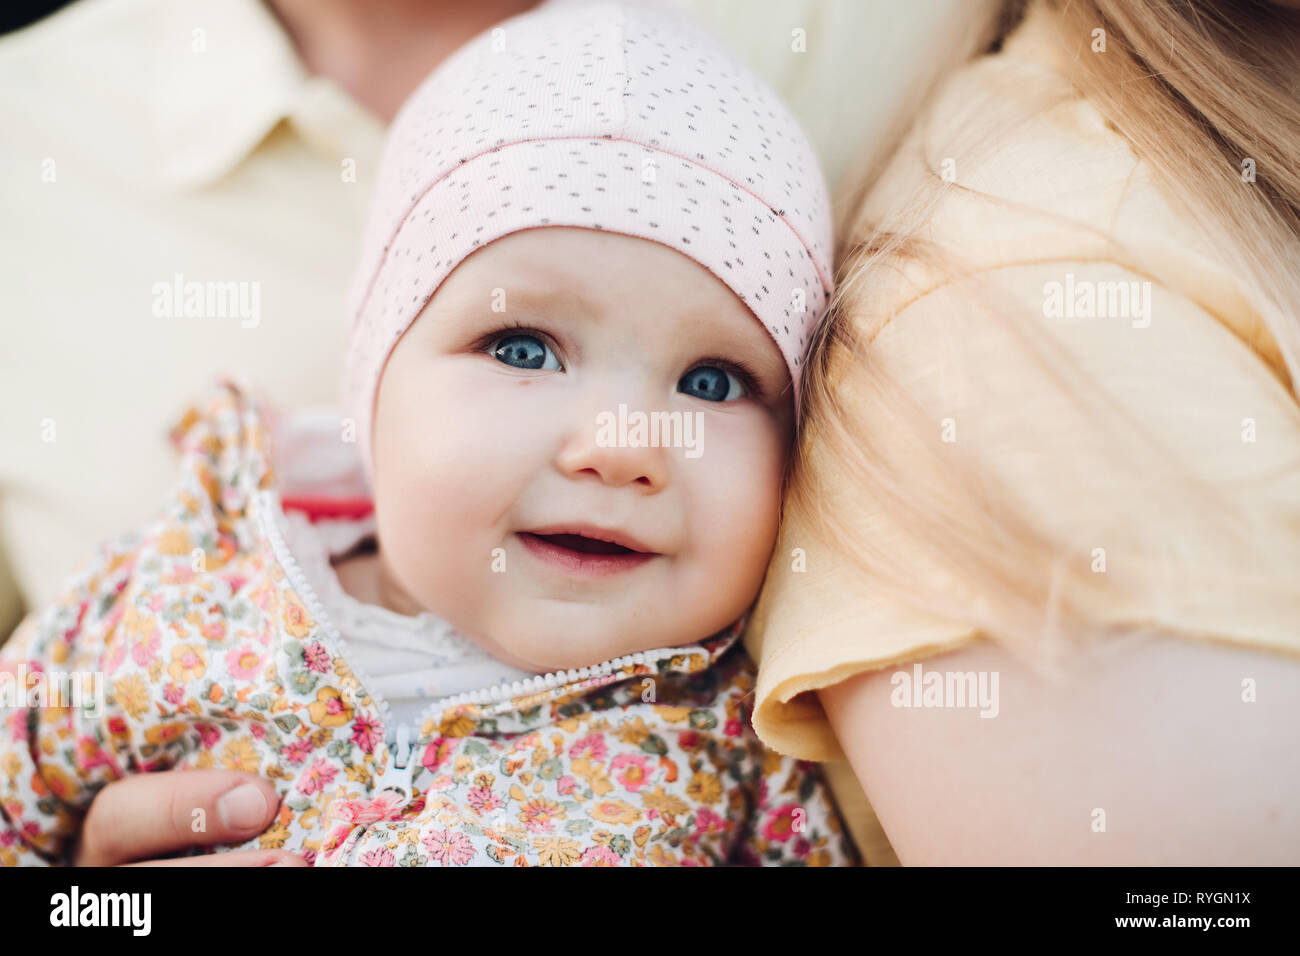 Close up of surprised baby's face with lightly opened mouth. Stock Photo